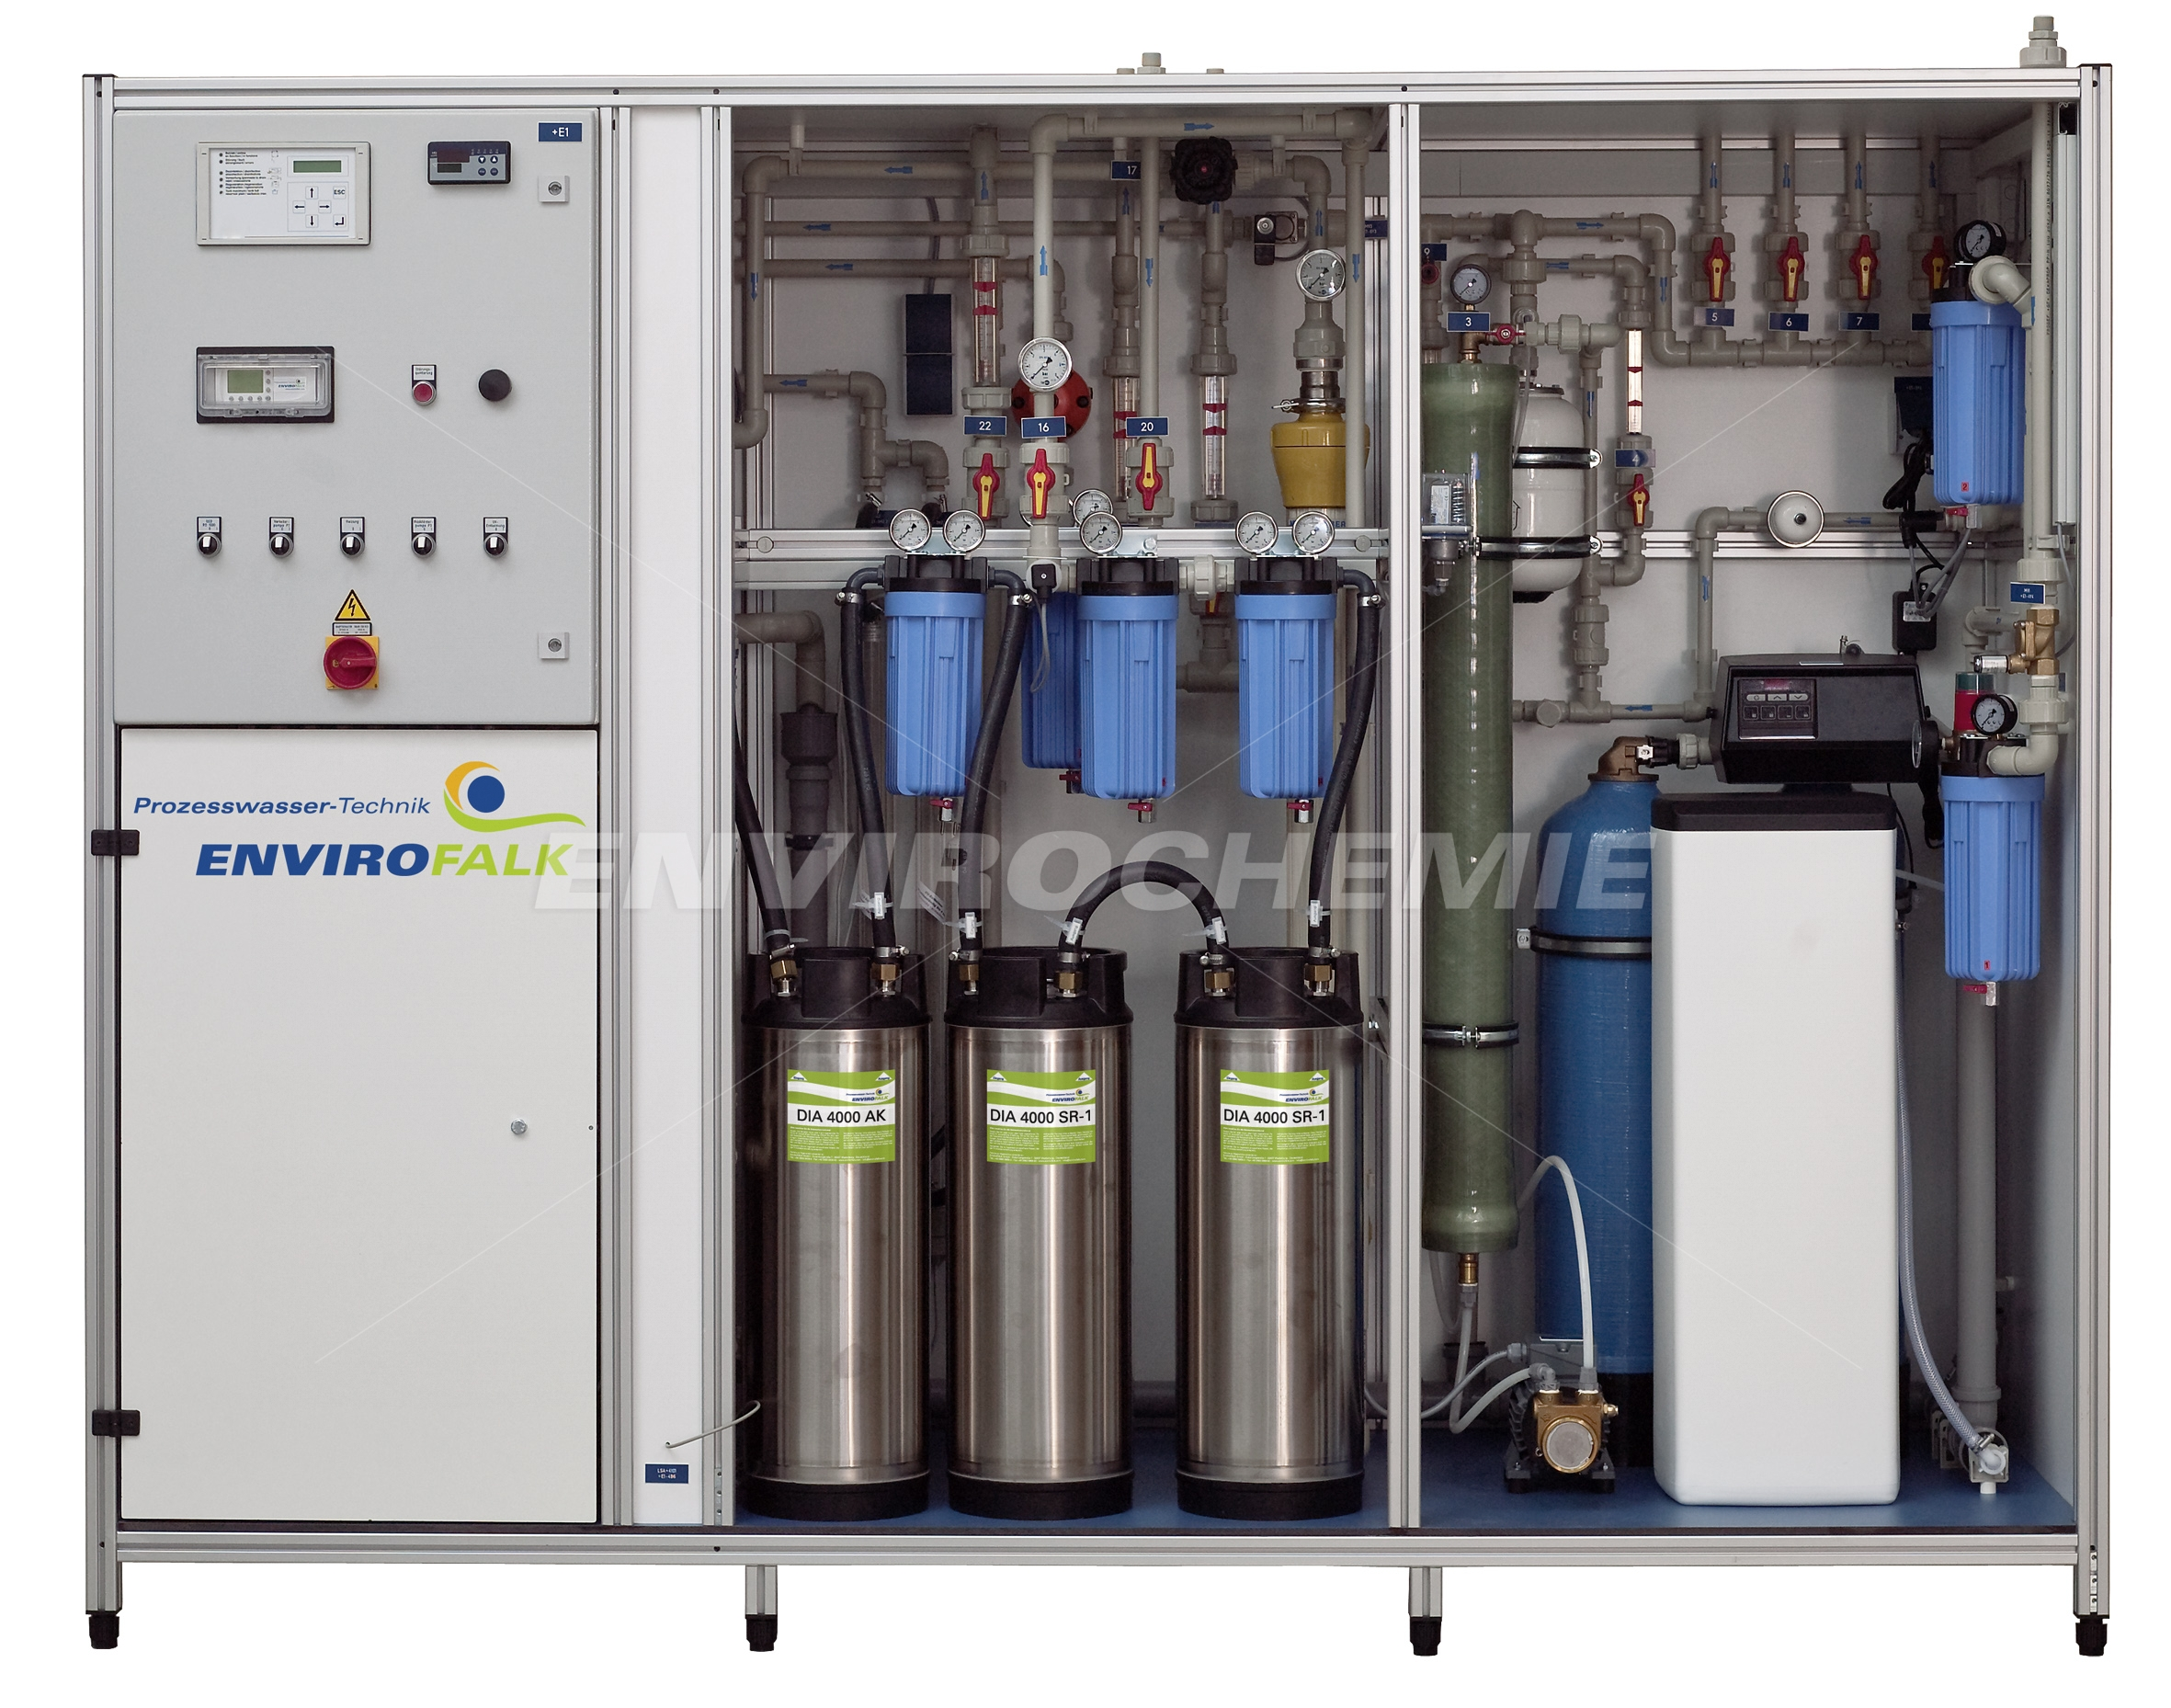 EnviroFALK water treatment system consisting of